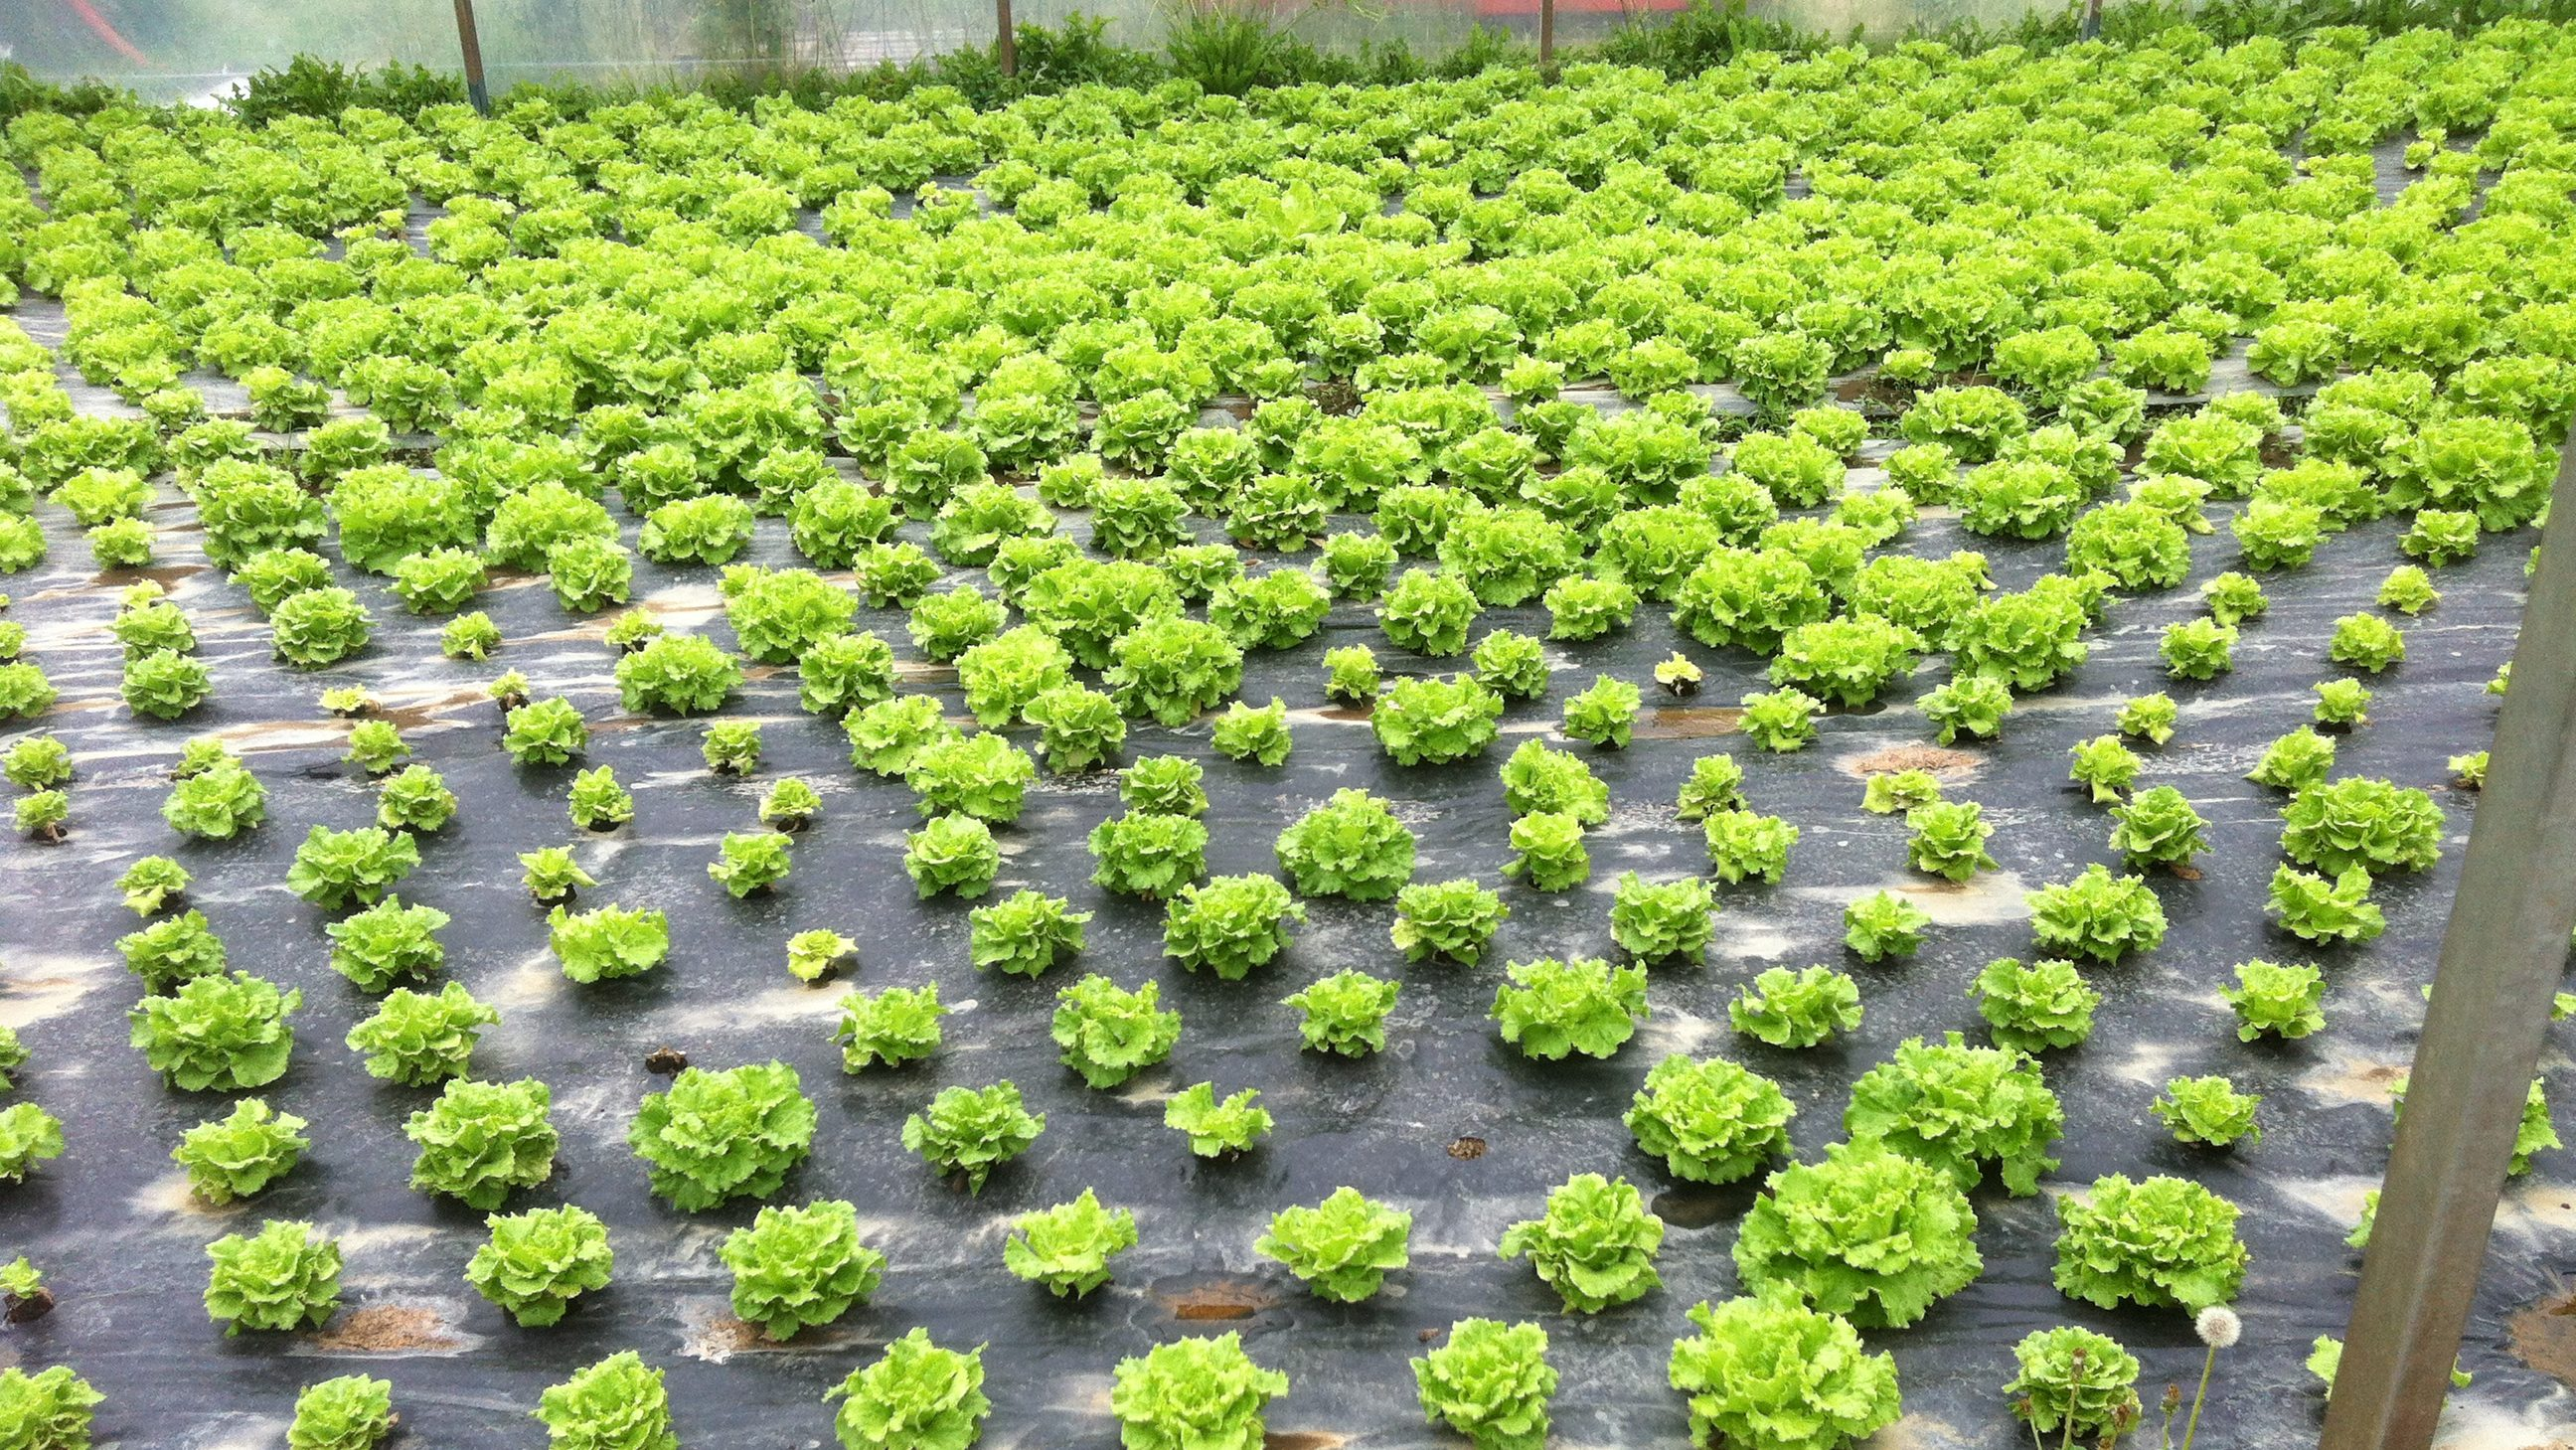 A lettuce crop, pictured after